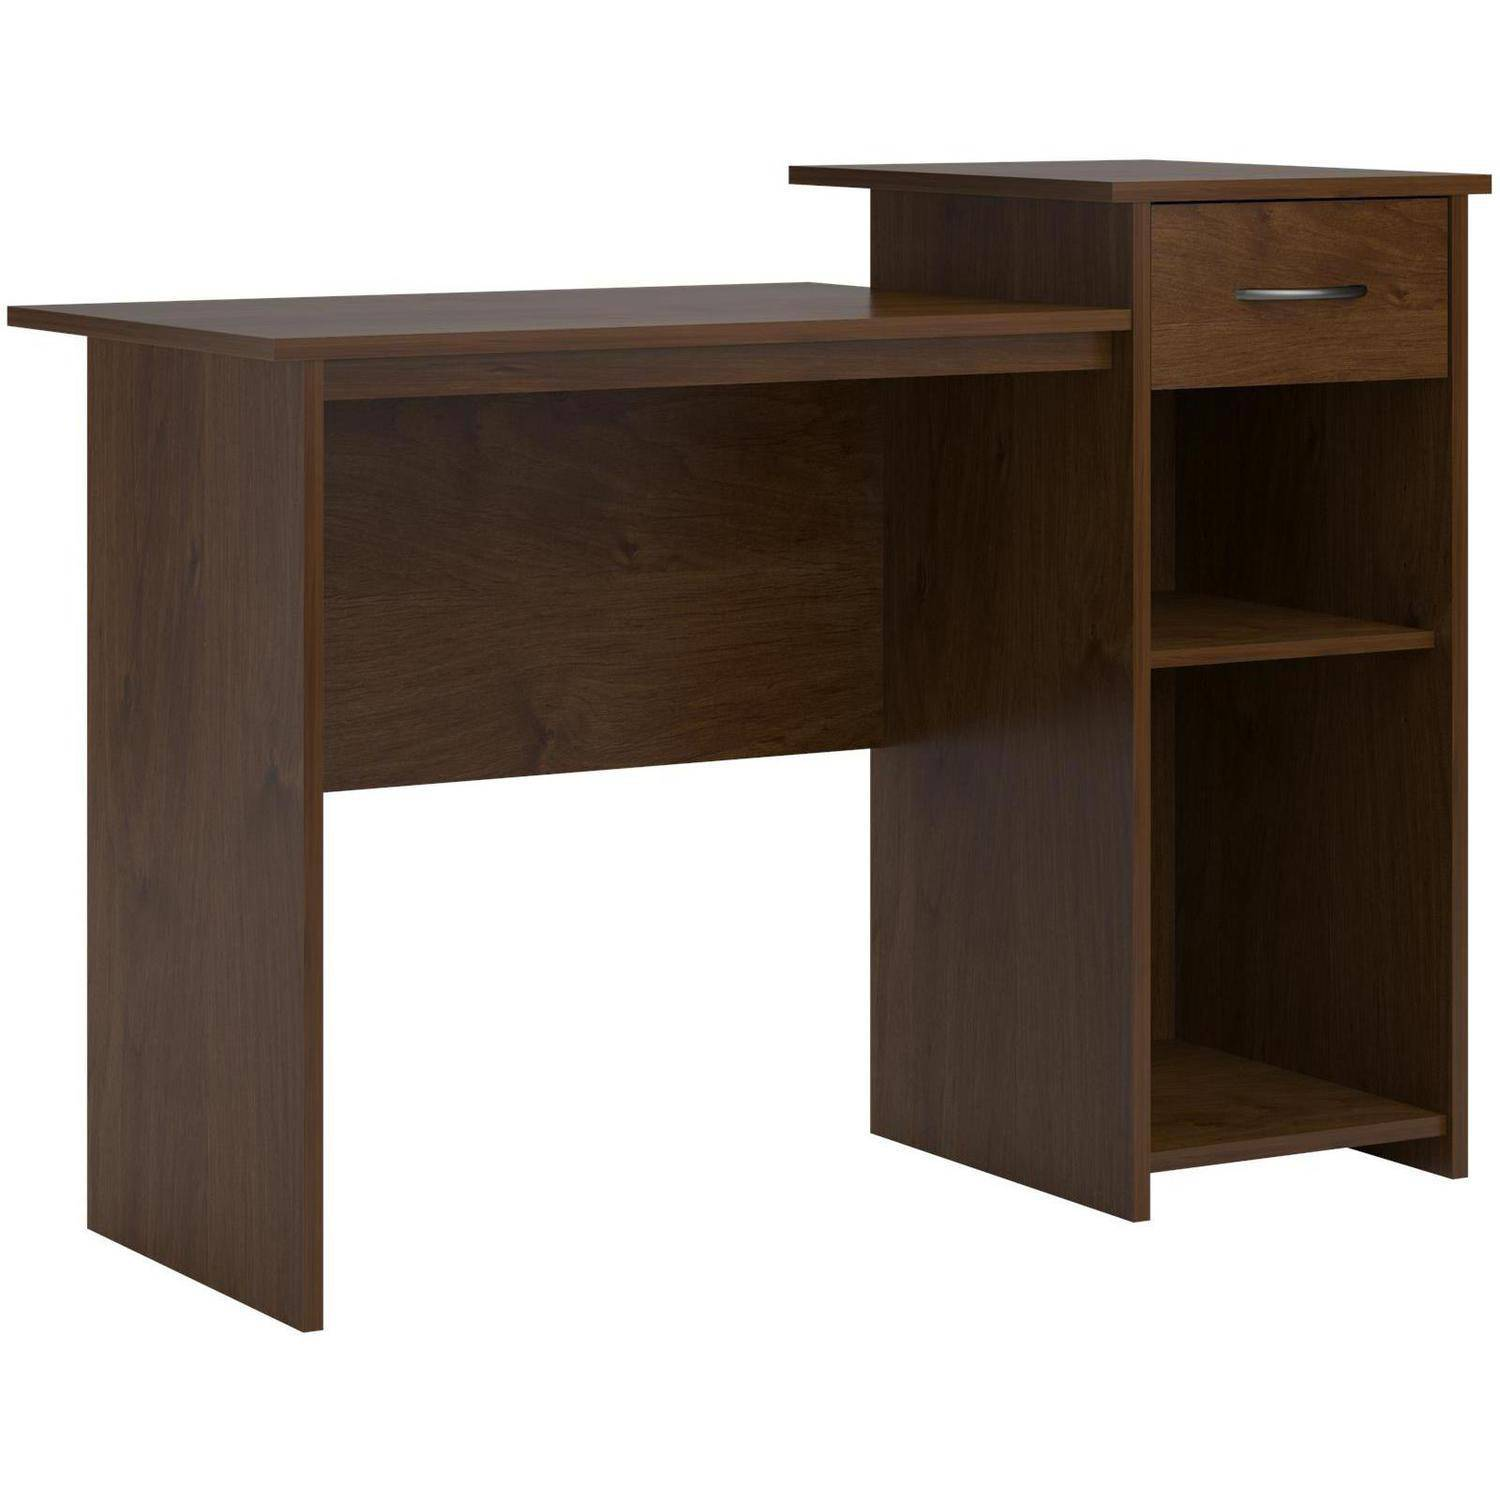 file hangers the hdf includes document files from each marvin drawers for cherry keeping products kids office com cozy laminate and cabinet made drawer in of concept